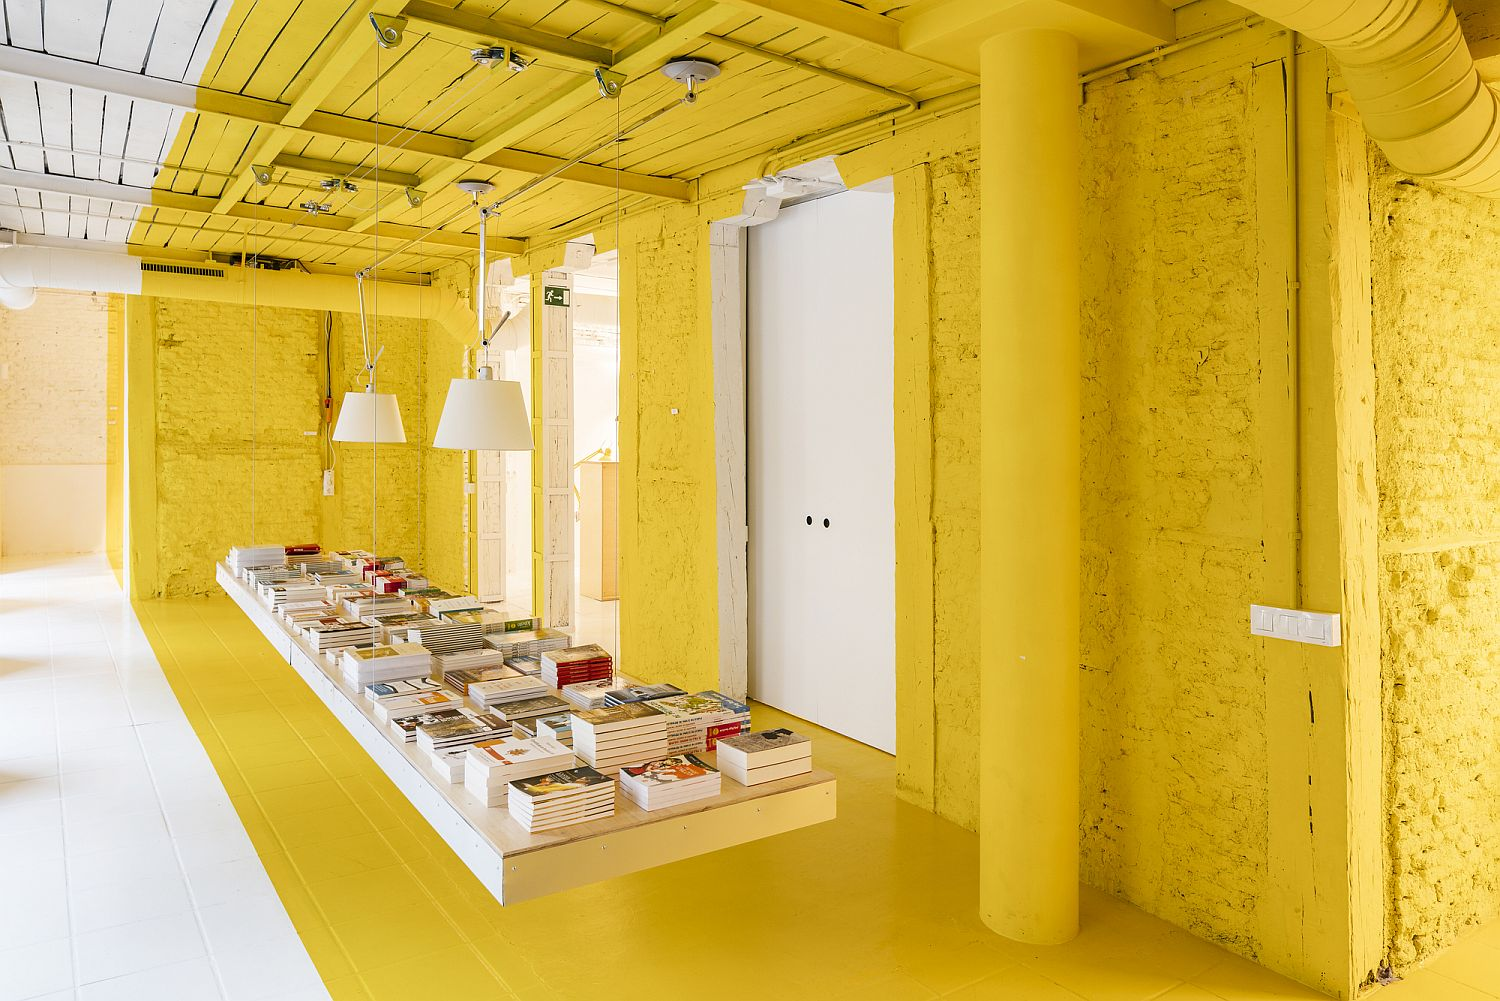 1562236172 525 amazing use of yellow for office interior meeting space in madrid - Amazing Use of Yellow for Office Interior: Meeting Space in Madrid